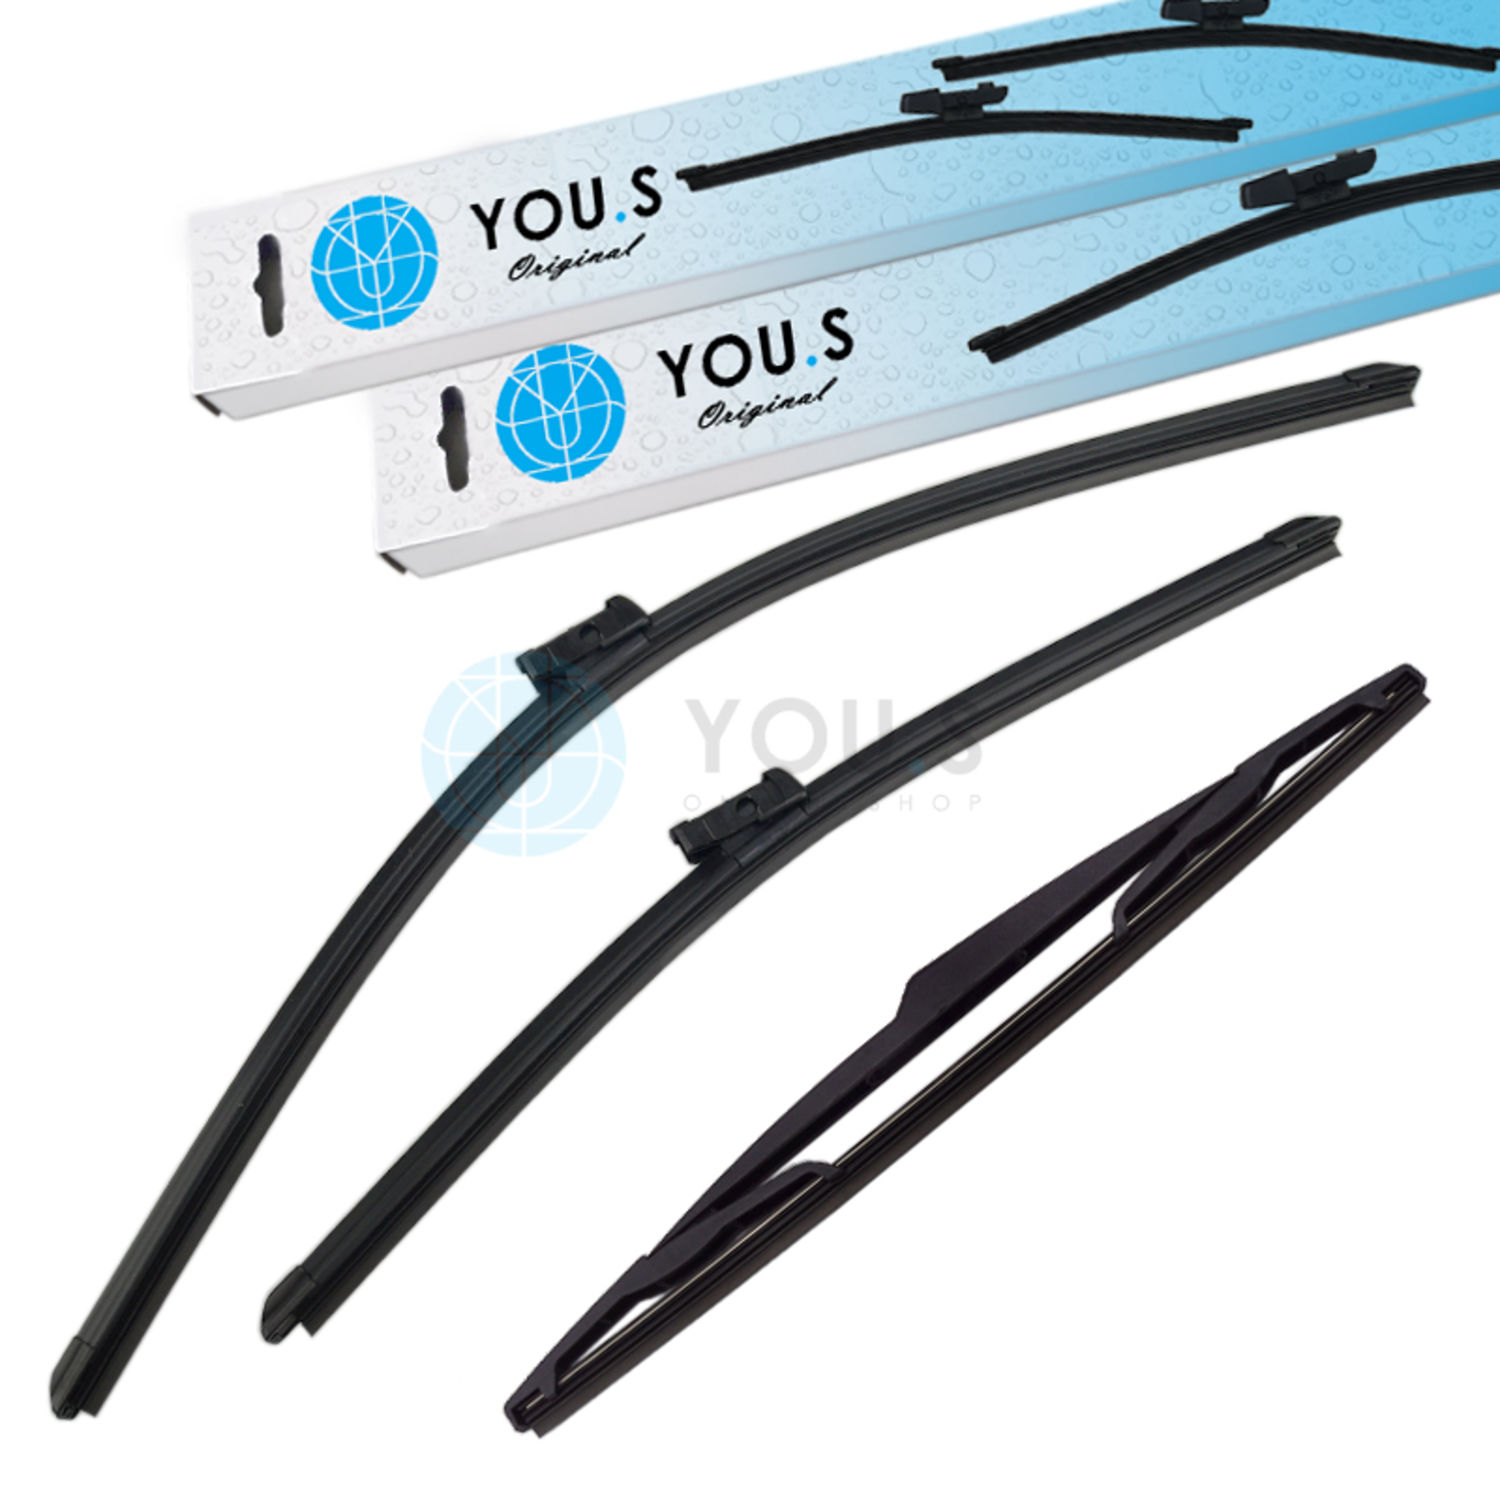 Details about You.s Original Windshield Wiper Set Front+Rear for Alfa Romeo Giulietta (940)